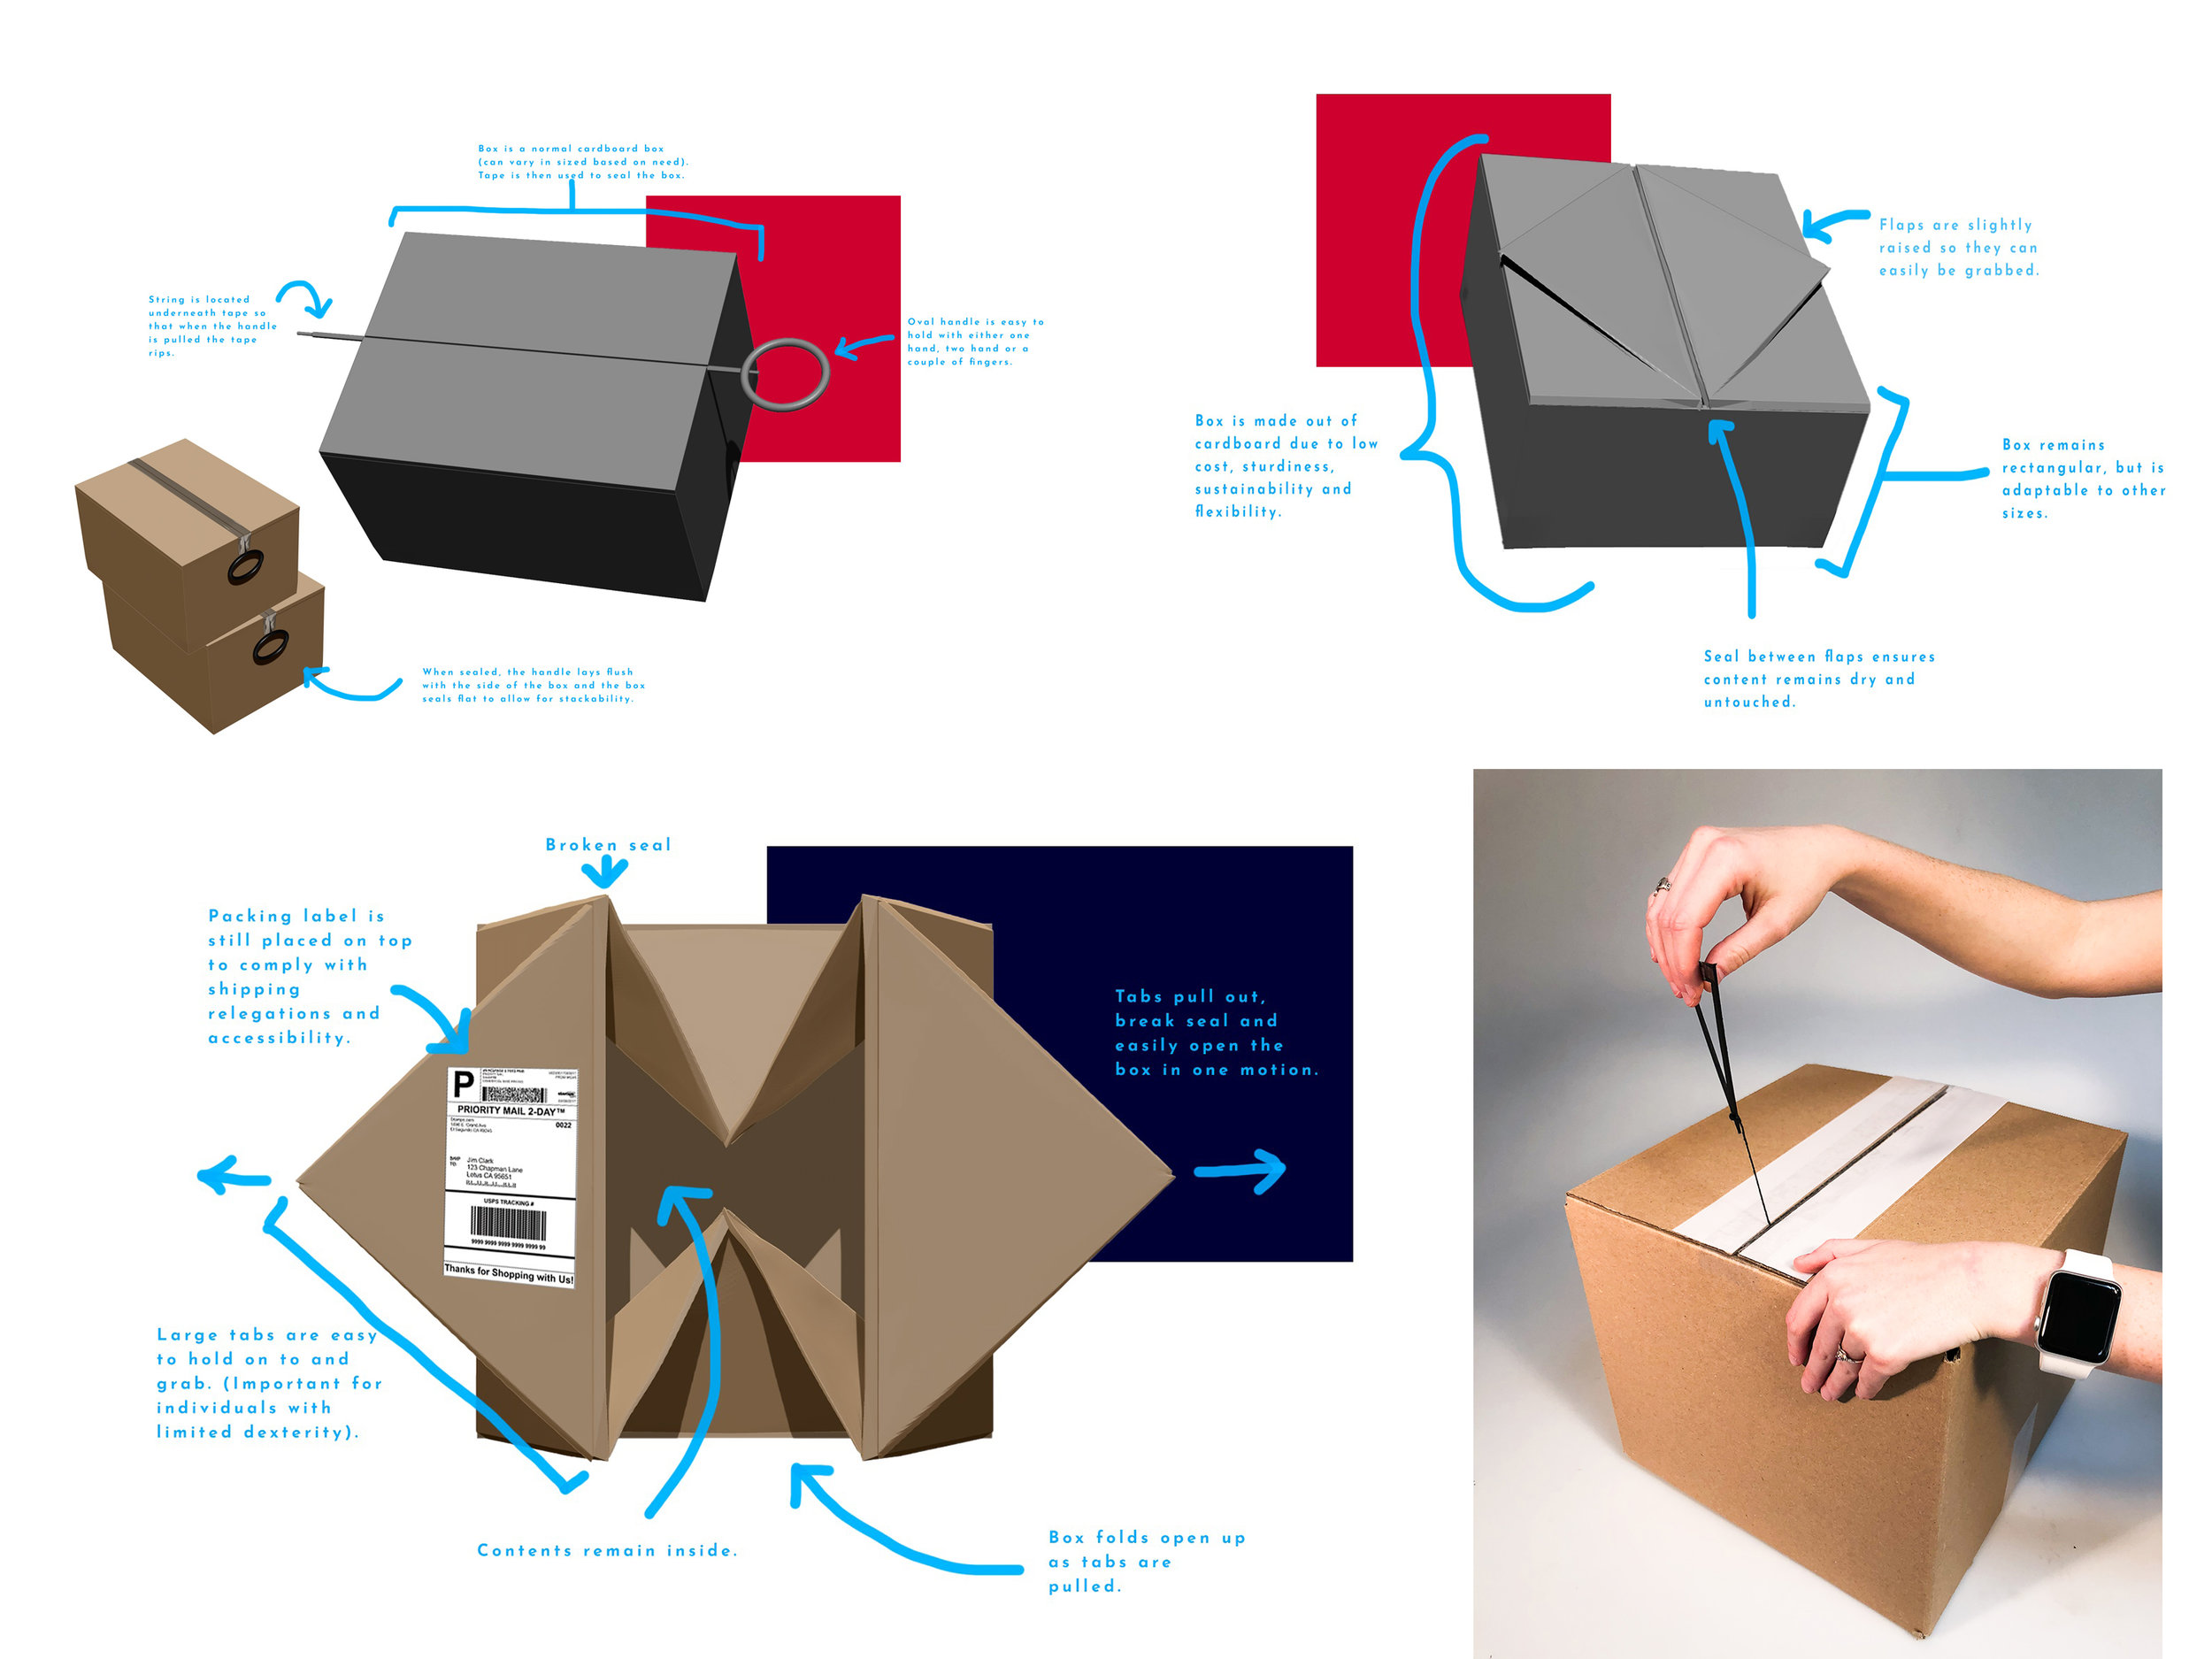 Copy of UX Design - Package Redesign for Individuals with Hand Mobility Disabilities